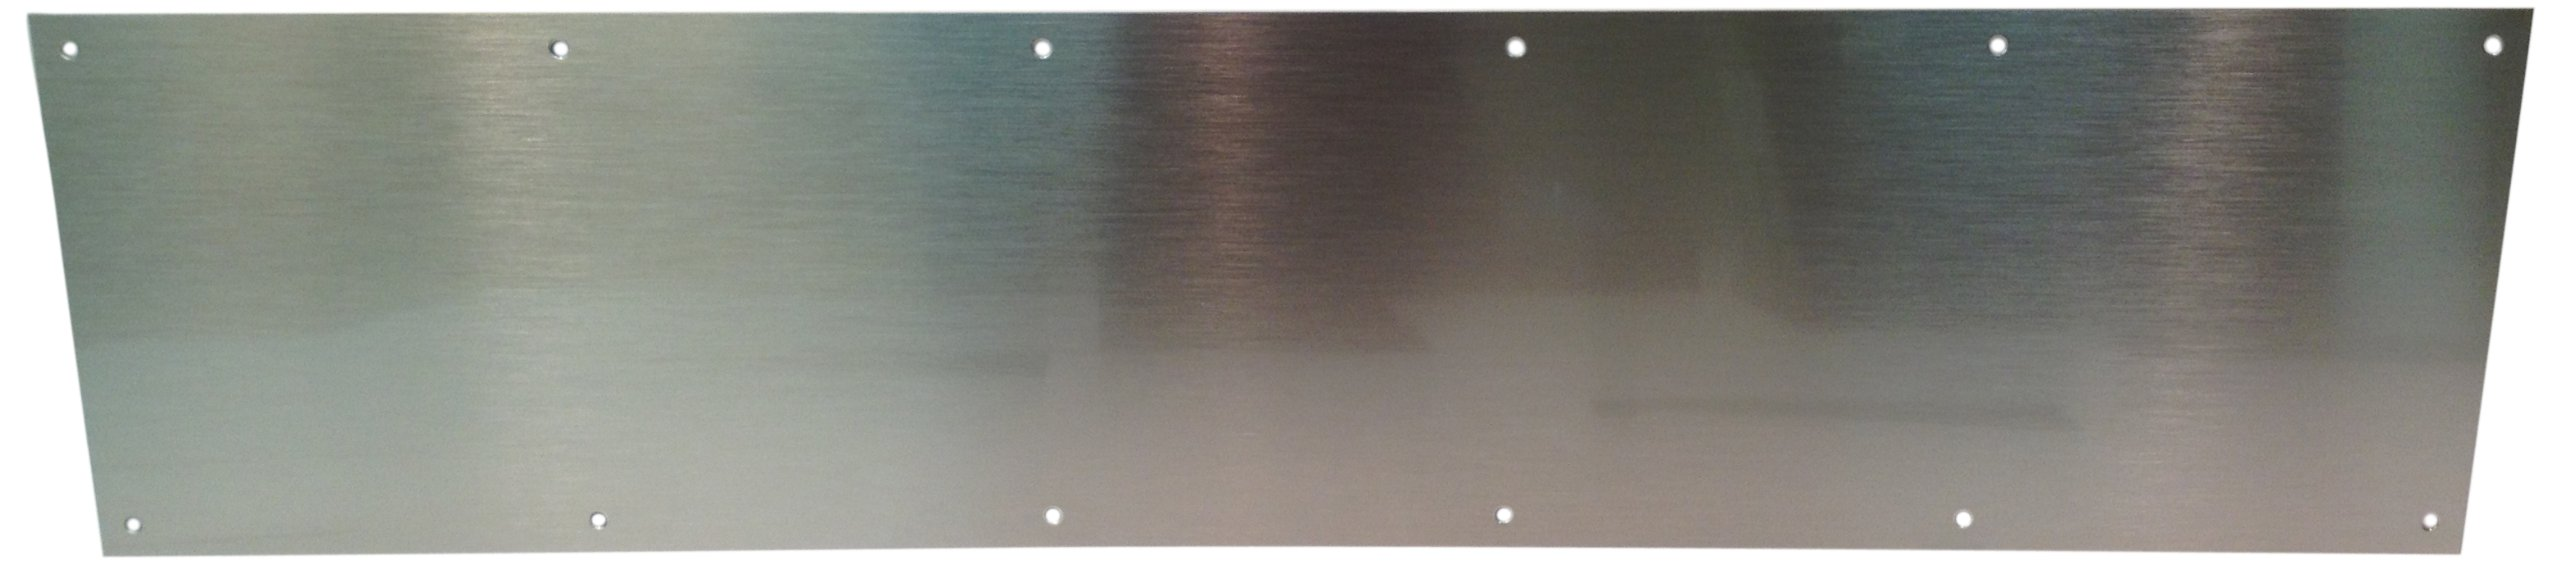 Don-Jo 90 Metal Kick Plate, Satin Stainless Steel Finish, 28'' Width x 8'' Height, 3/64'' Thick